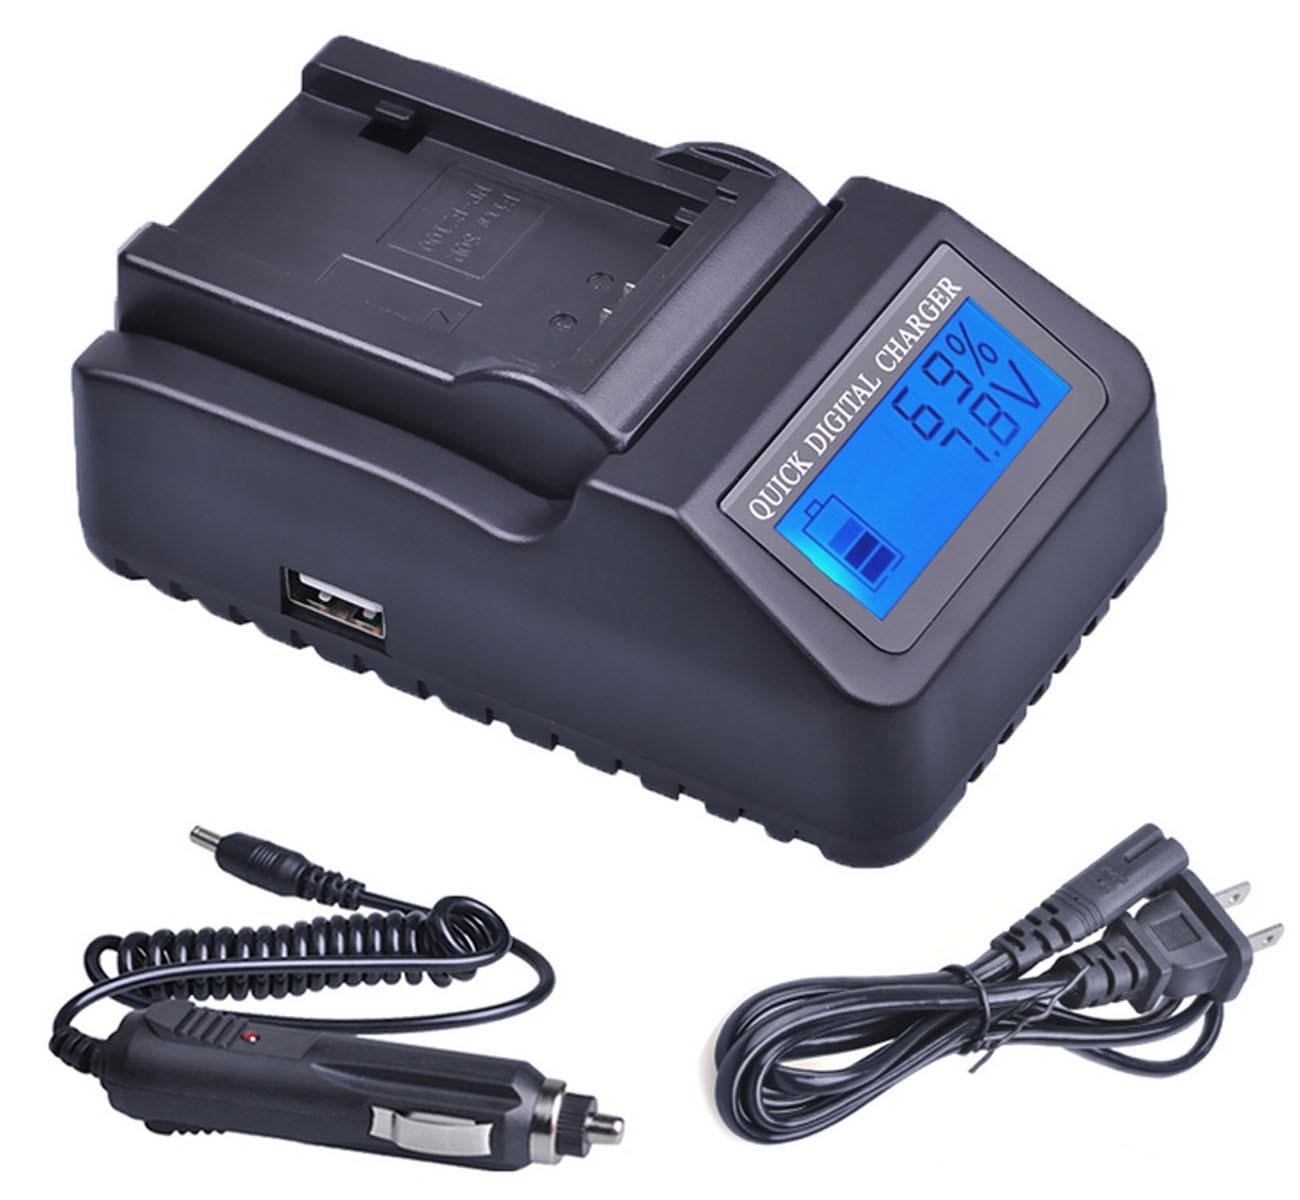 LCD Quick Battery Charger for JVC BN-VG121, BN-VG121E, BN-VG121EU, BN-VG121U, BN-VG121US, BN-VG121US